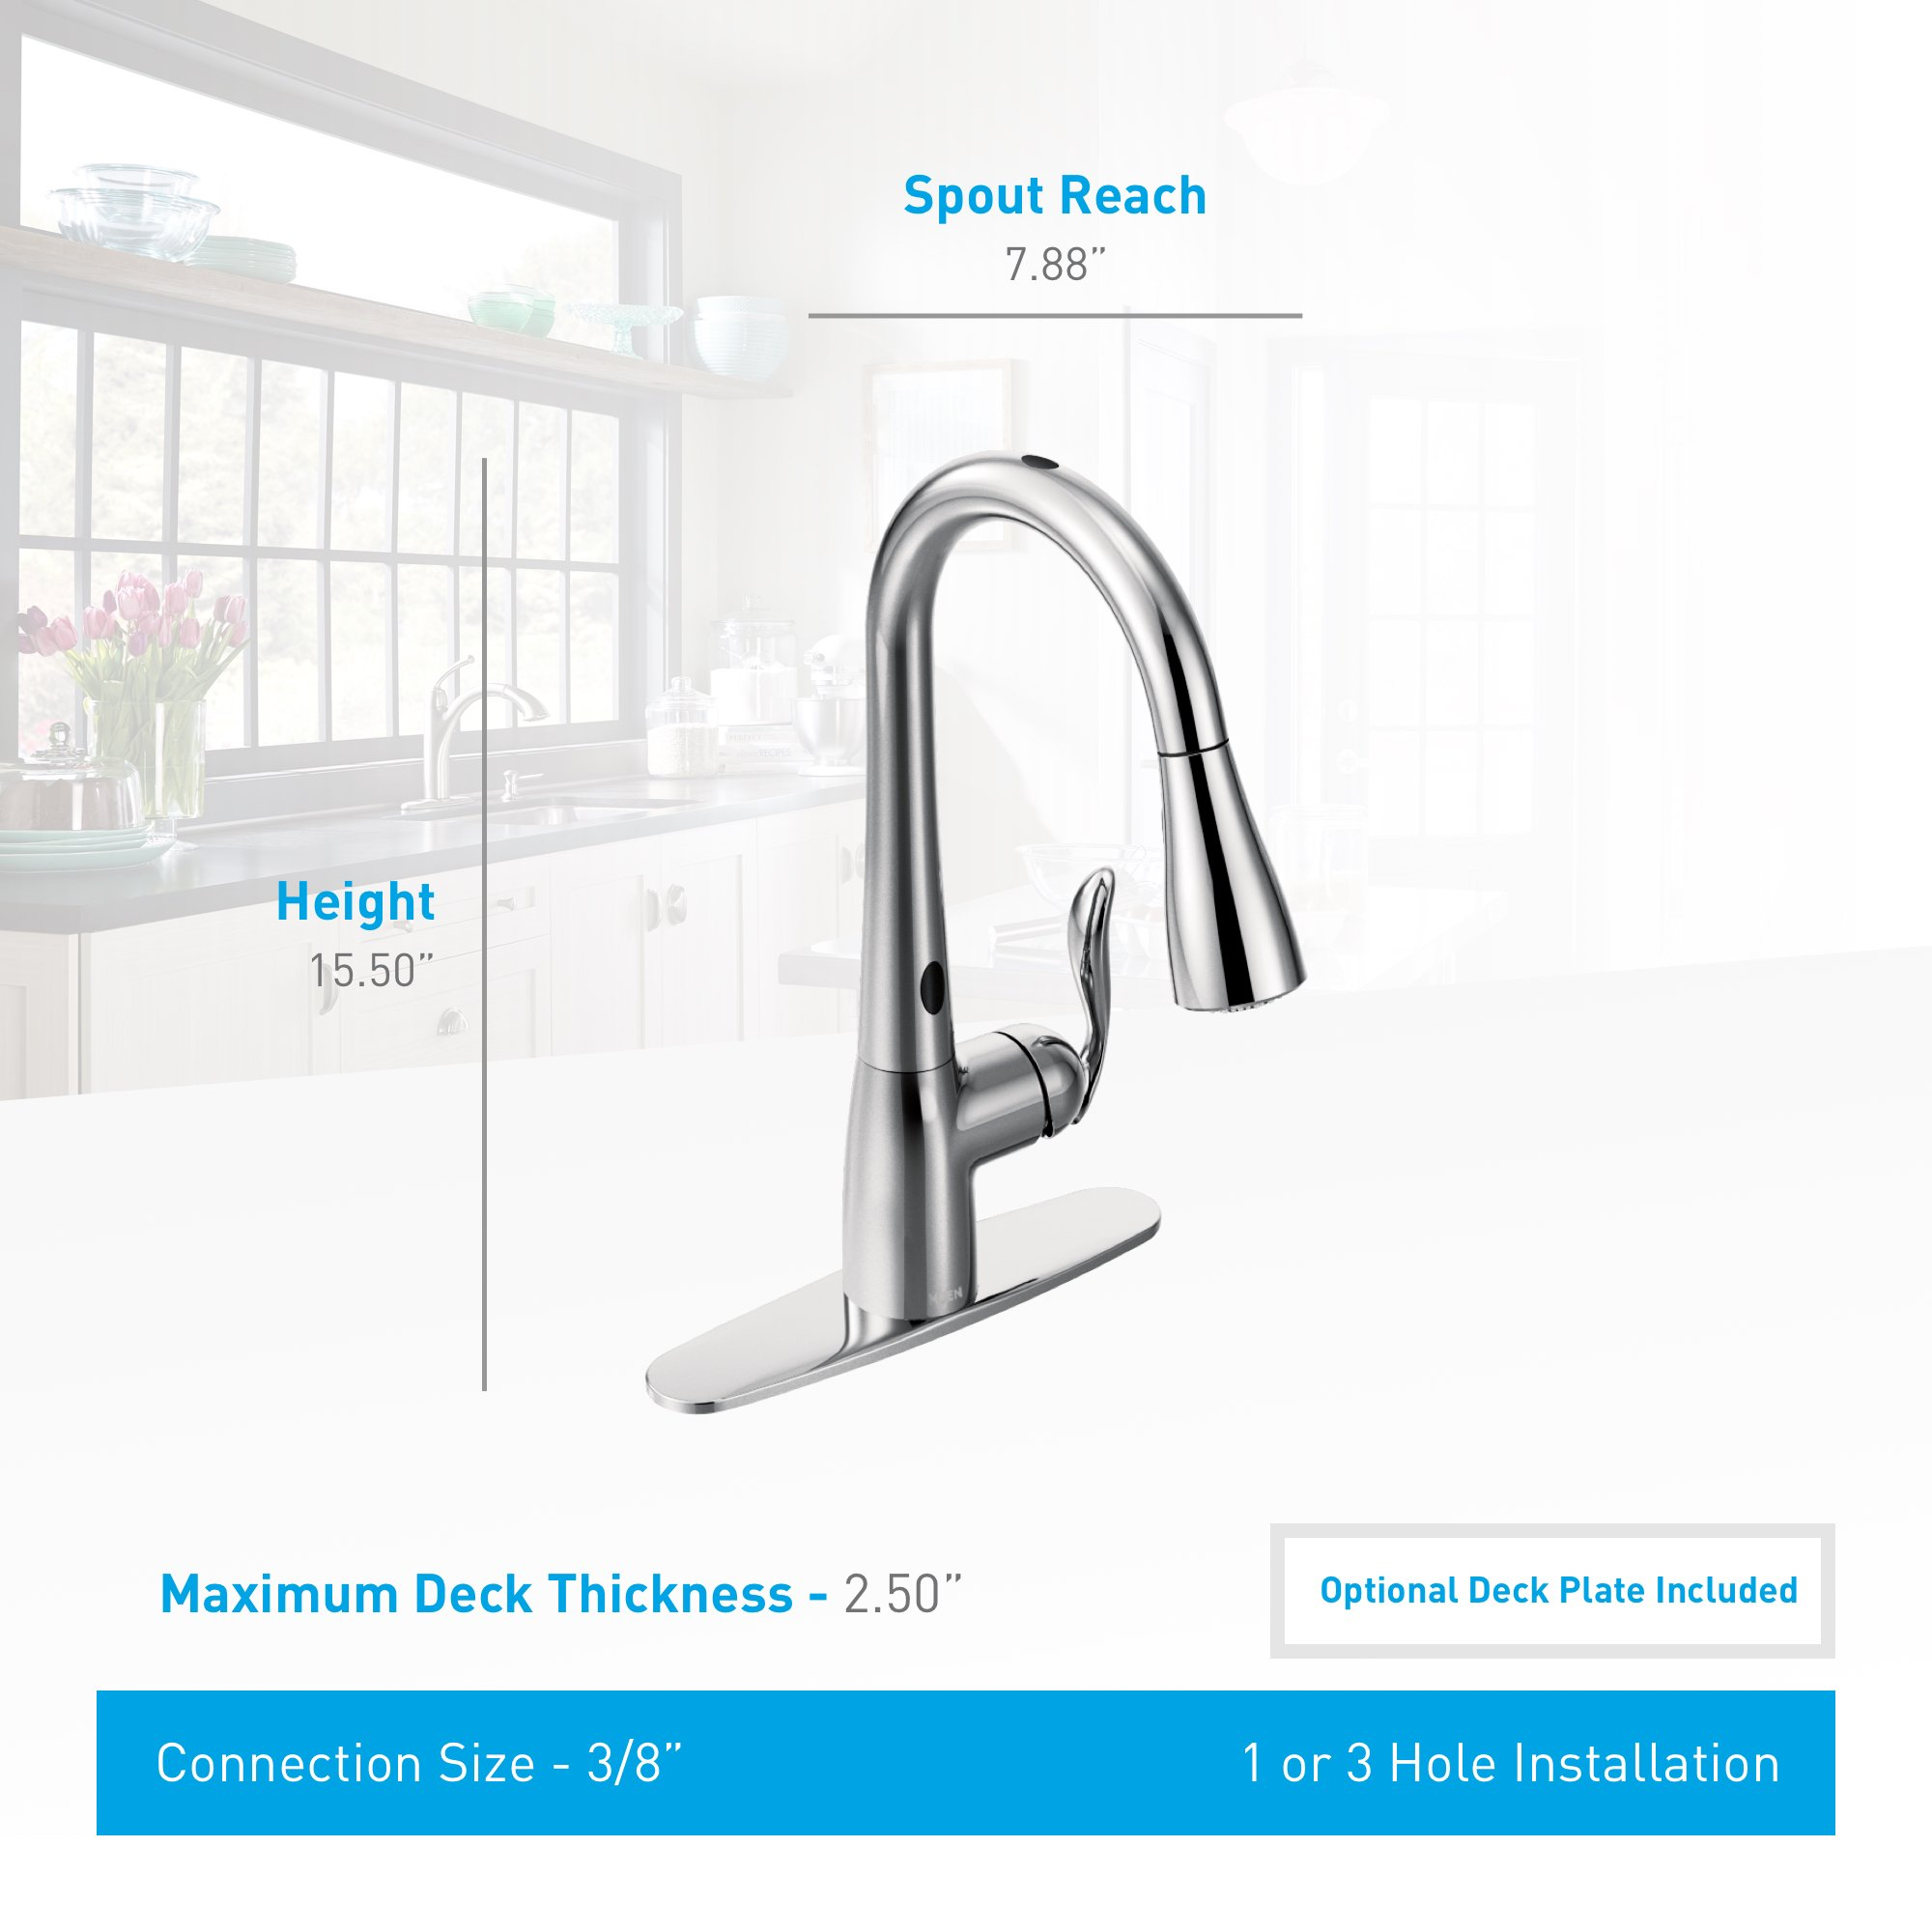 Moen Arbor Motionsense Touchless One-Handle High Arc Pulldown Kitchen Faucet Featuring Reflex, Chrome (7594EC) by Moen (Image #3)